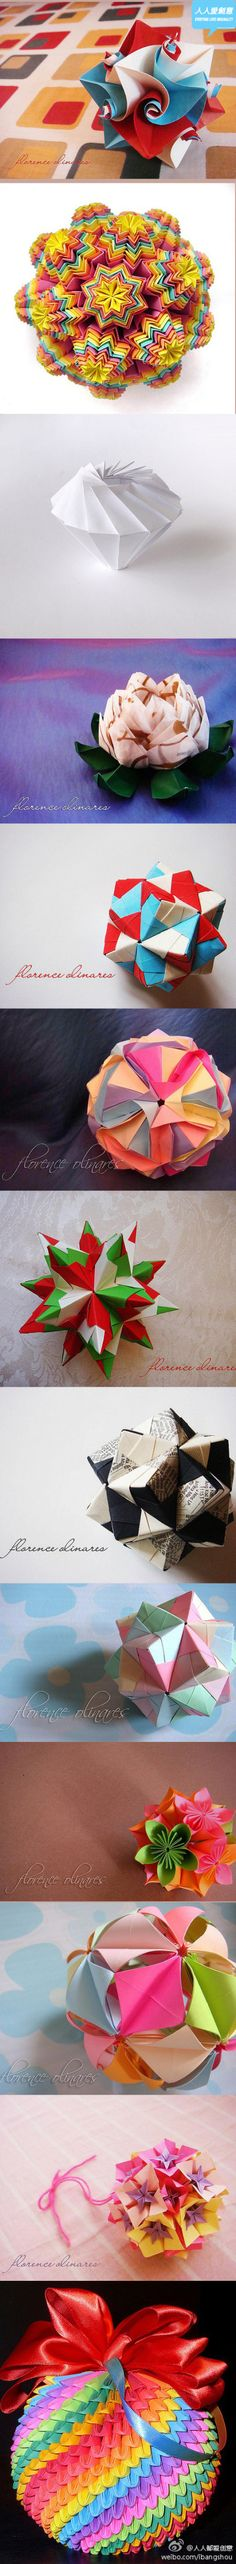 Origami - It's really an art!